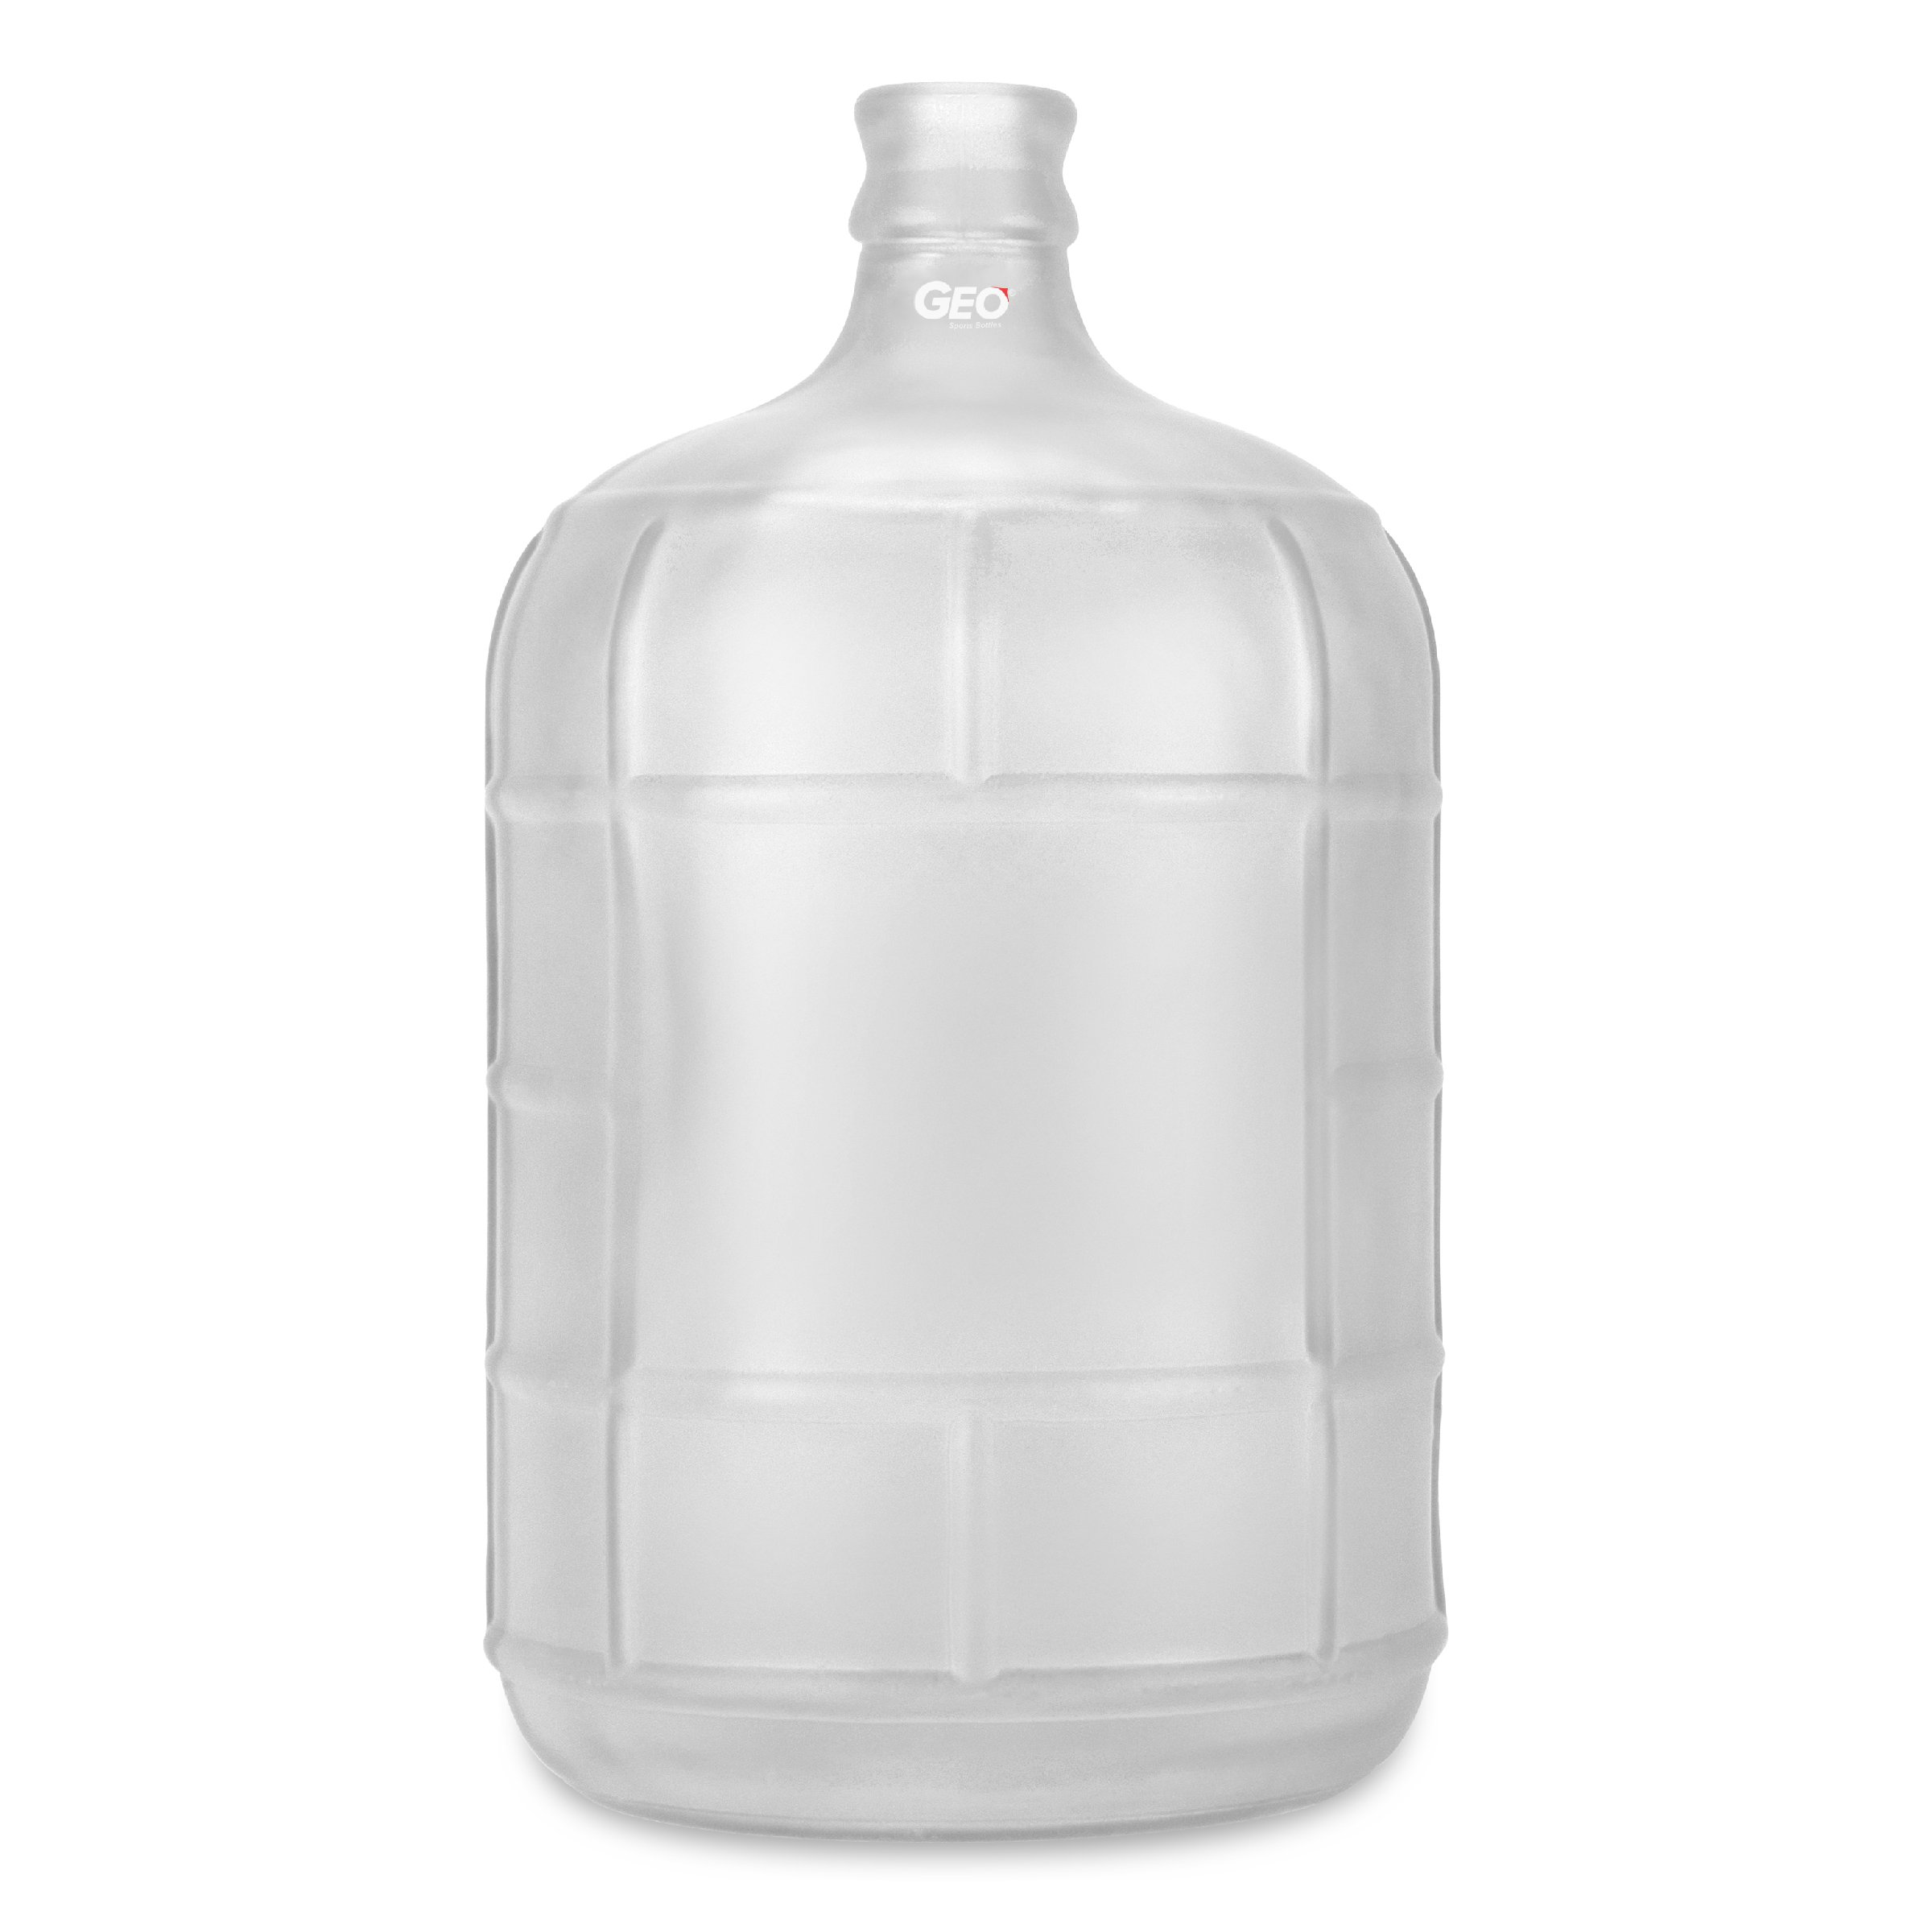 Geo Sports Bottles 3 Gallon Round Glass Carboy fits 30mm Cork Finish or 55mm Push Cap Home Brew (Frosted White)